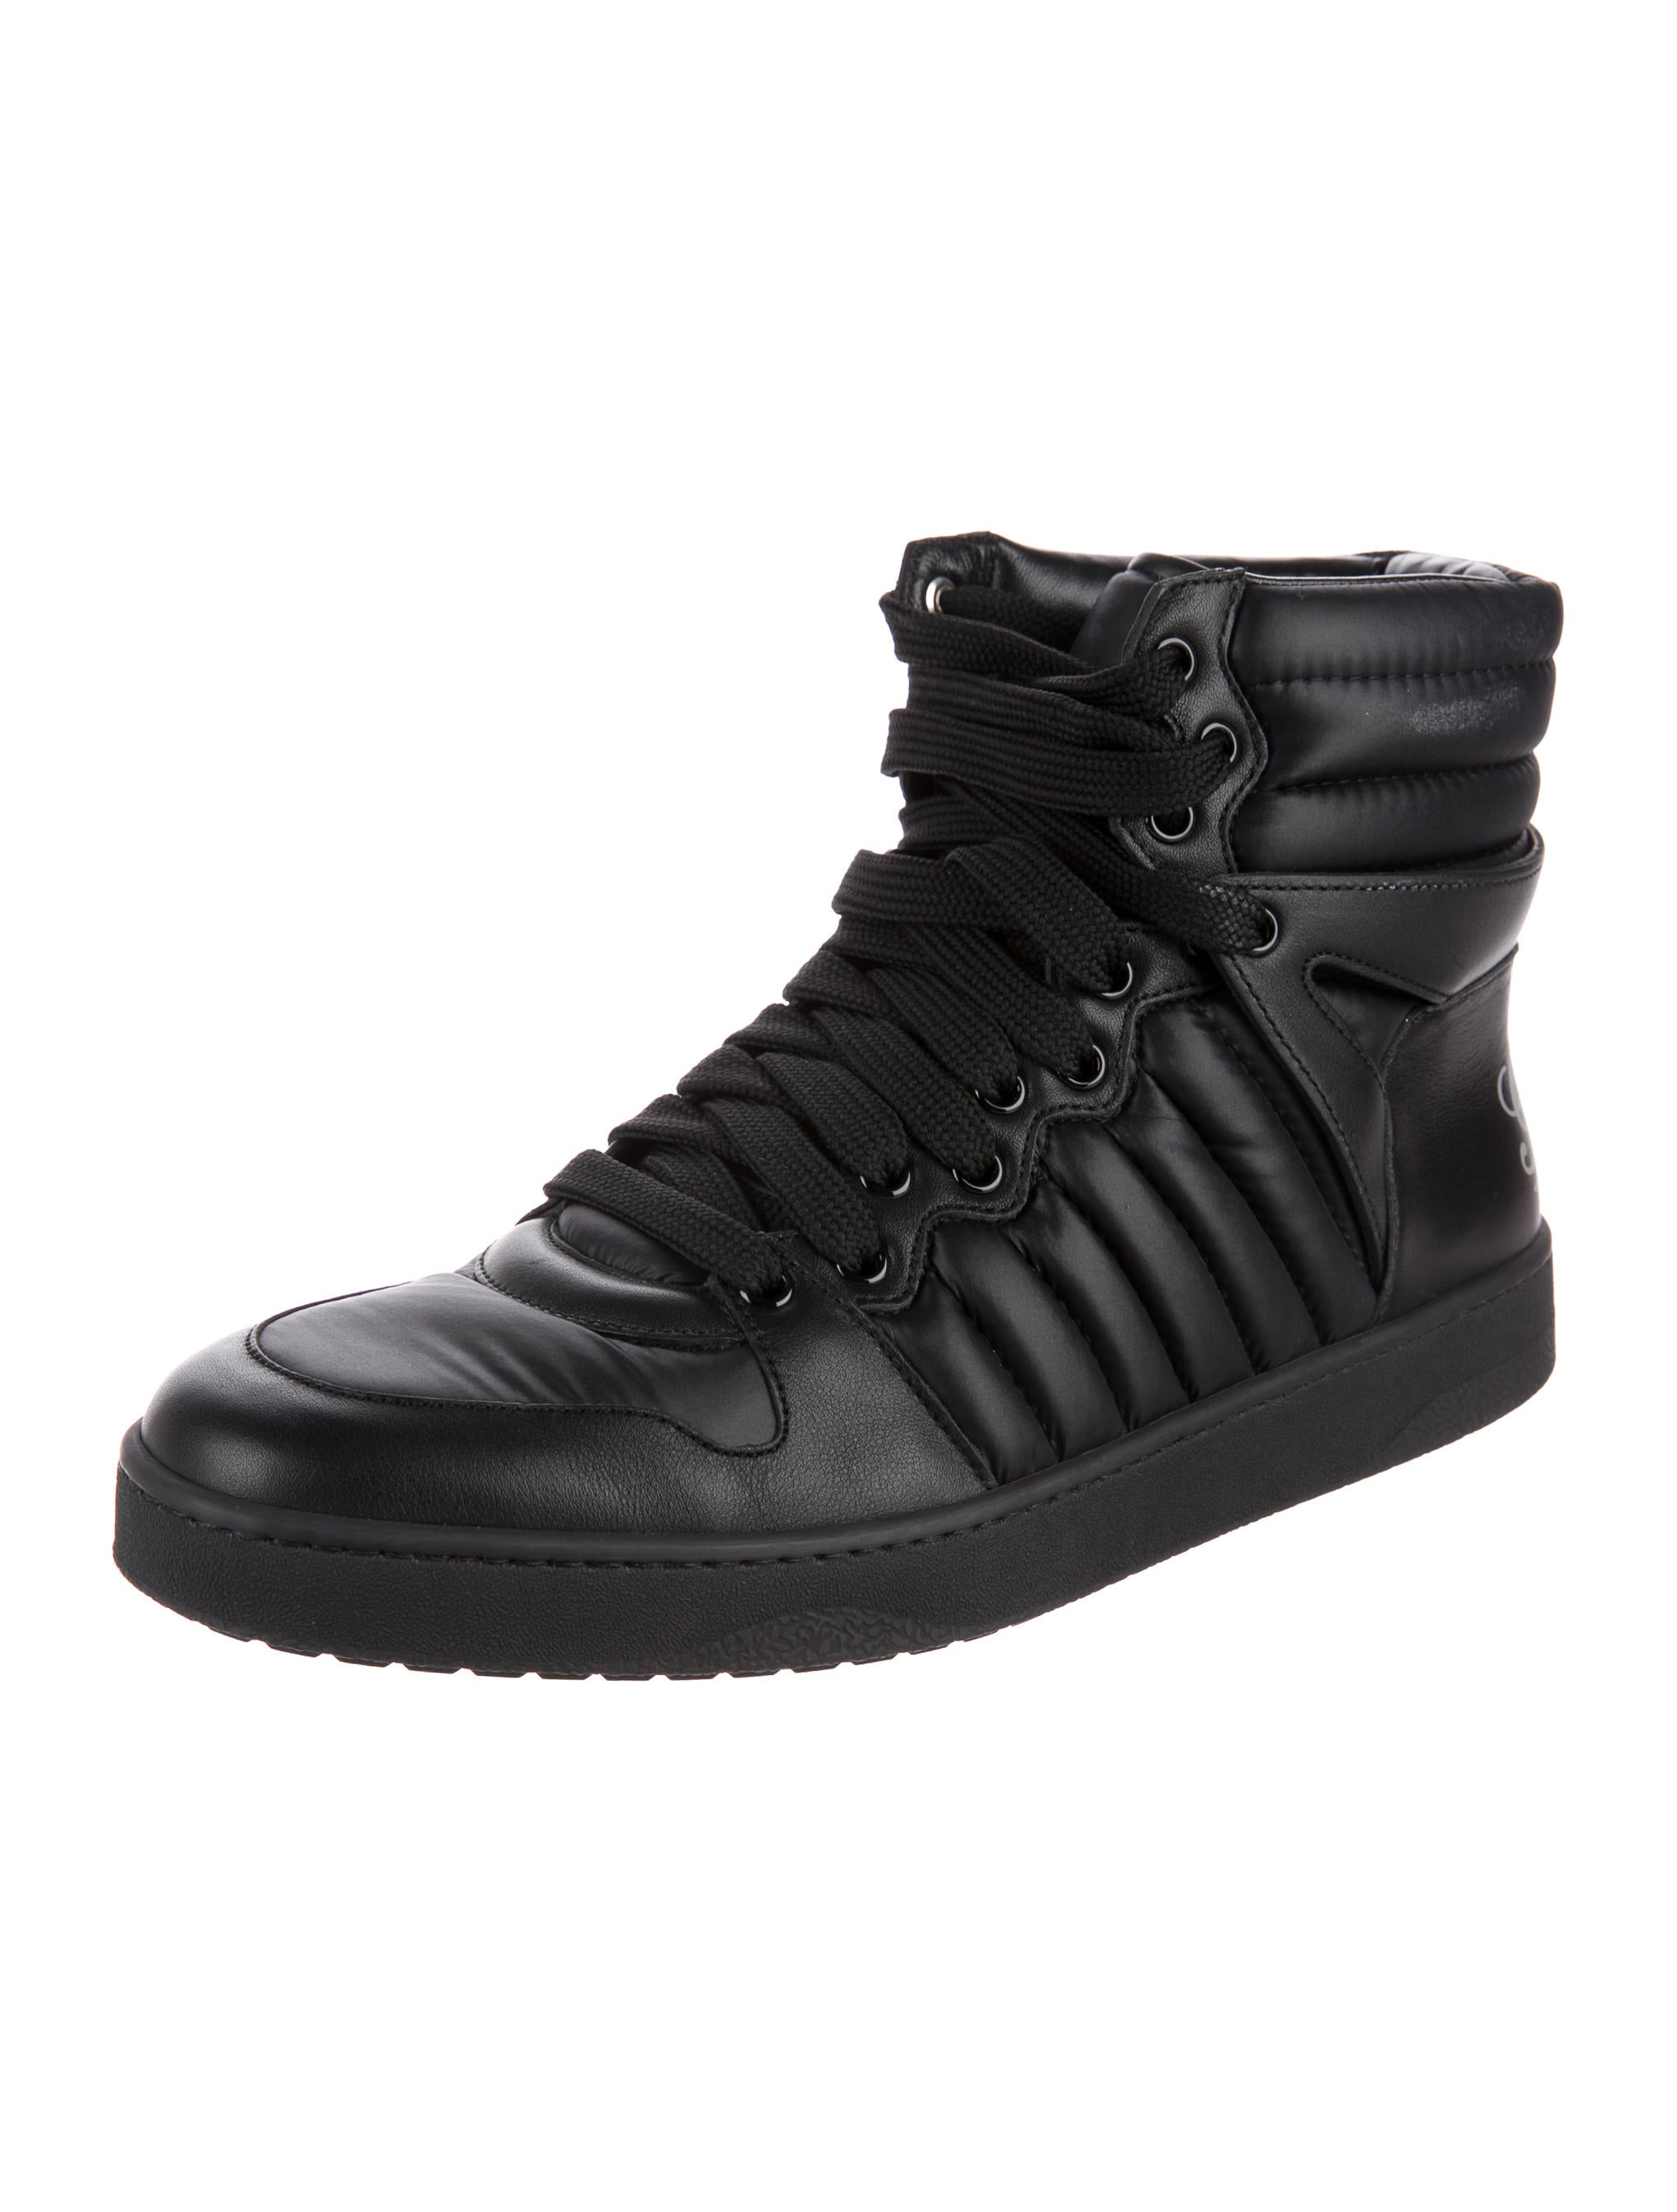 gucci leather high top sneakers shoes guc164724 the